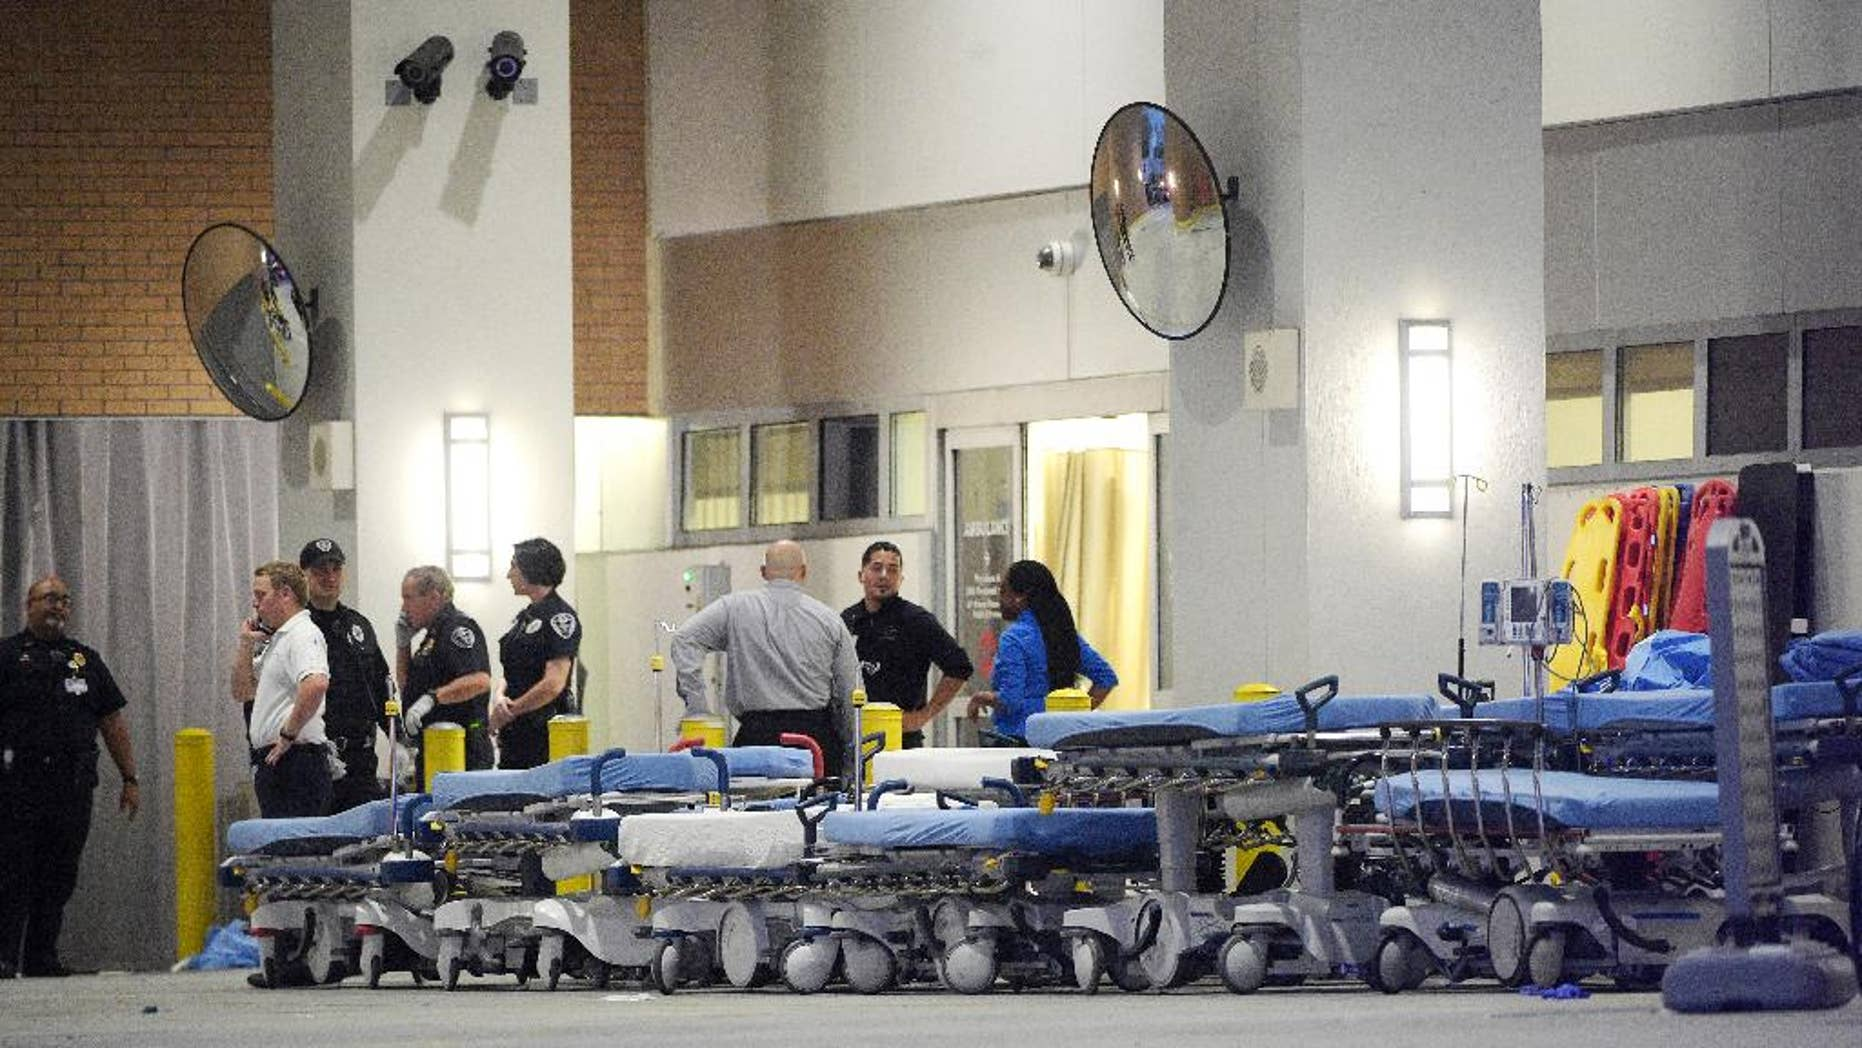 FILE - In this June 12, 2016, file photo,emergency personnel wait with stretchers at the emergency entrance to Orlando Regional Medical Center hospital for the arrival of patients from the scene of a fatal shooting at Pulse Orlando nightclub in Orlando, Fla. Radical Islamic militancy that has sustained itself for decades overseas has inspired a series of attacks on U.S. soil in the last year and a half. The culprits typically have no ties to foreign terrorist organizations, no explicit directions from overseas and no formal training, unlike the operatives of 9/11. Instead, they've blended into American society and skated beneath the radar of federal investigators grappling with a frenetic threat landscape and hundreds of investigations across the country. (AP Photo/Phelan M. Ebenhack, file)